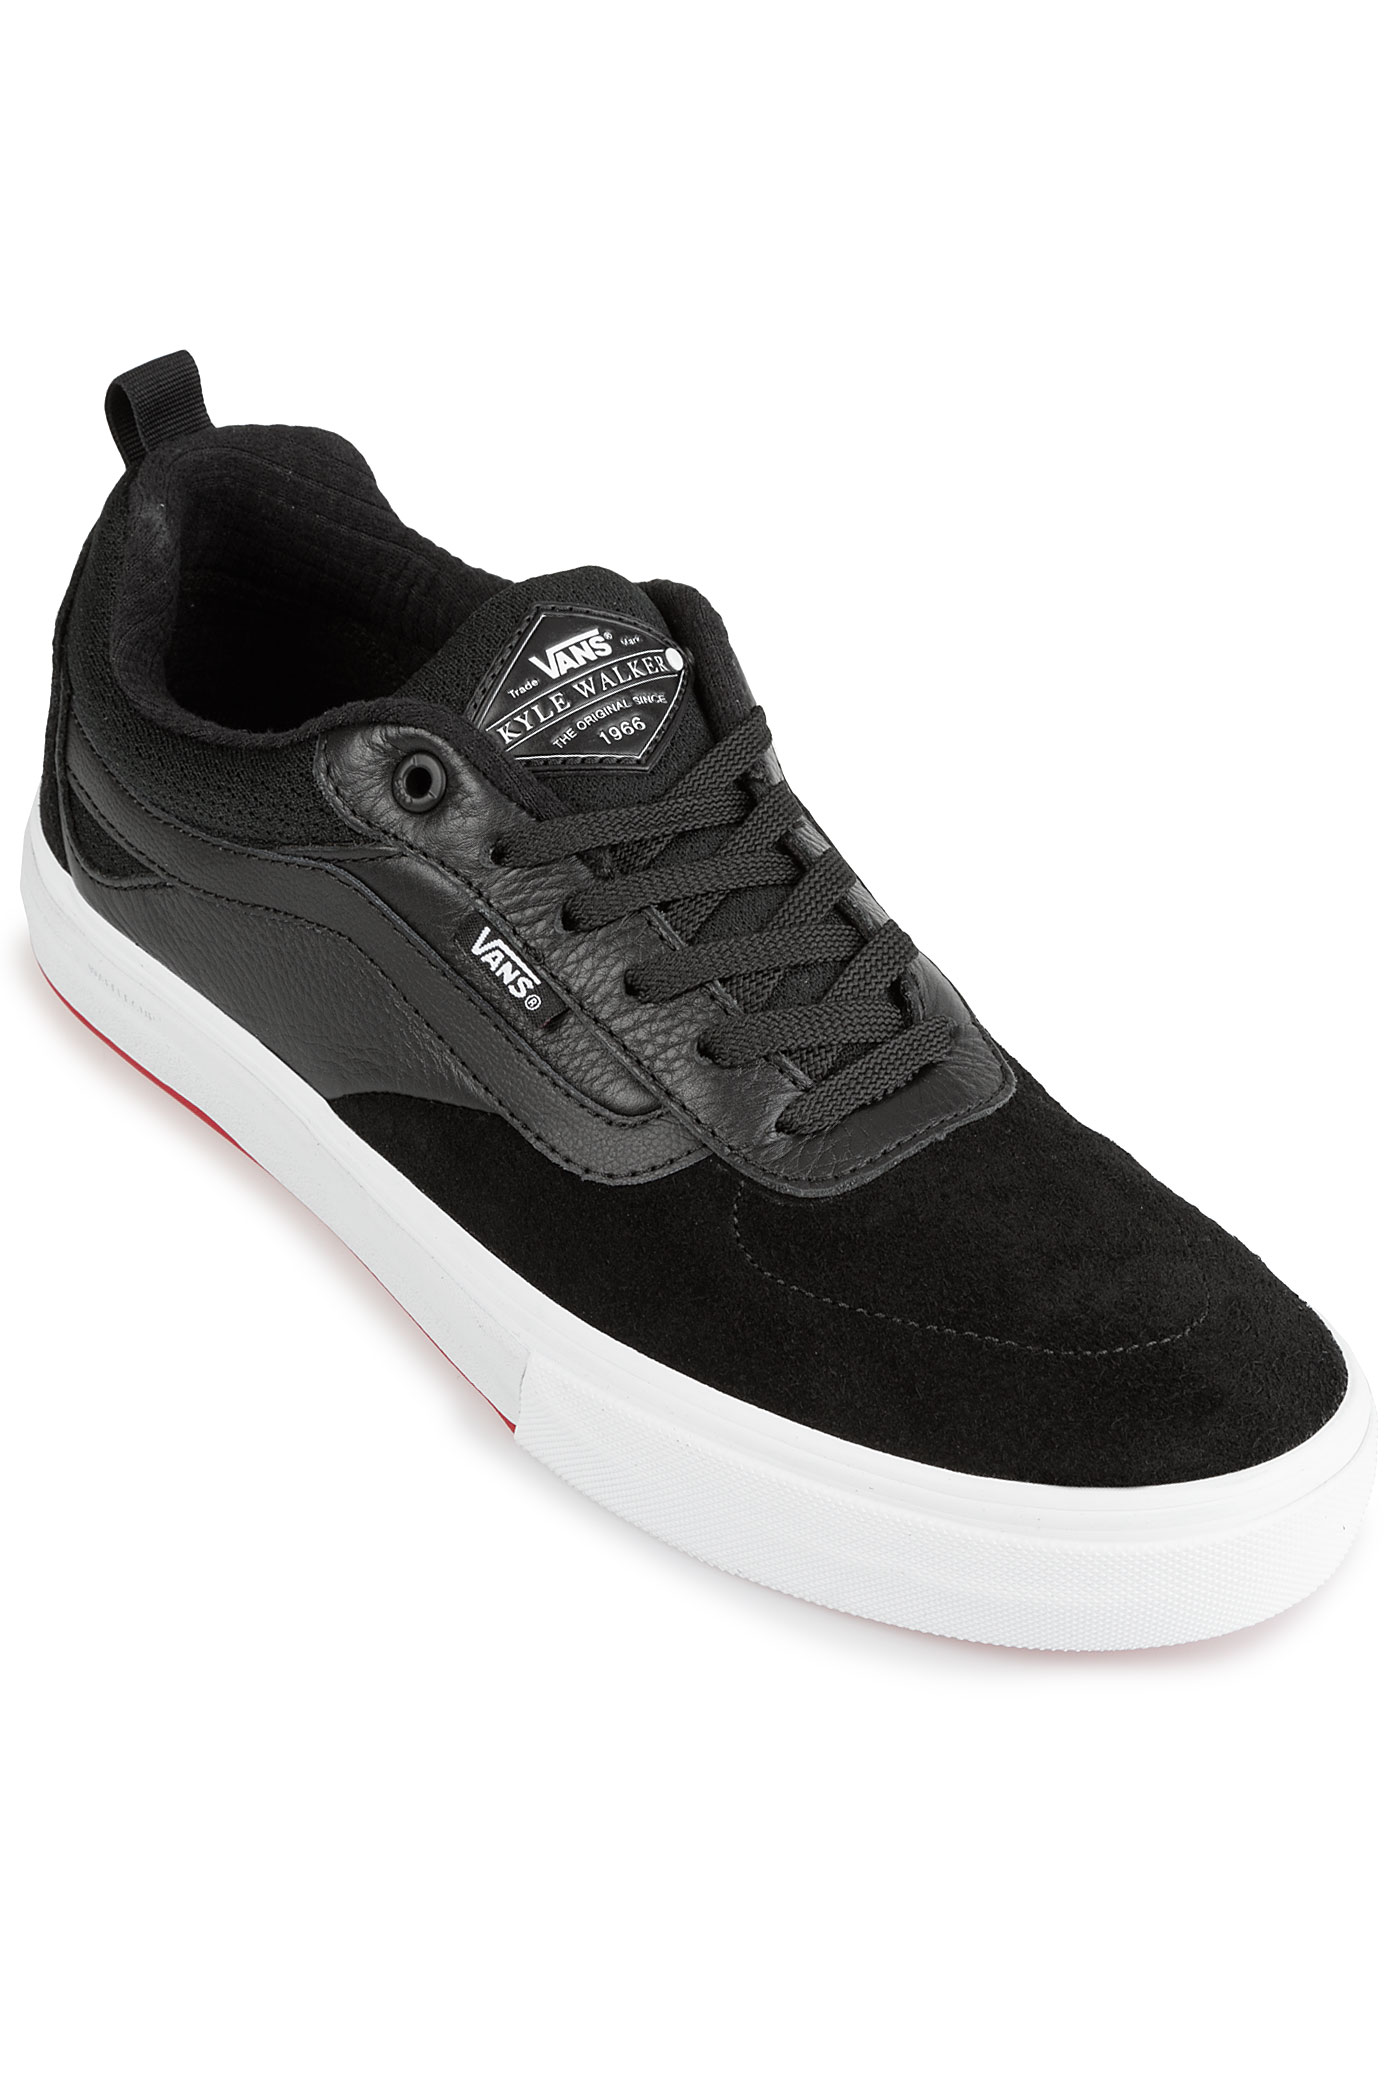 Vans Kyle Pro Chaussureblack Red Walker bIf7Ygyv6